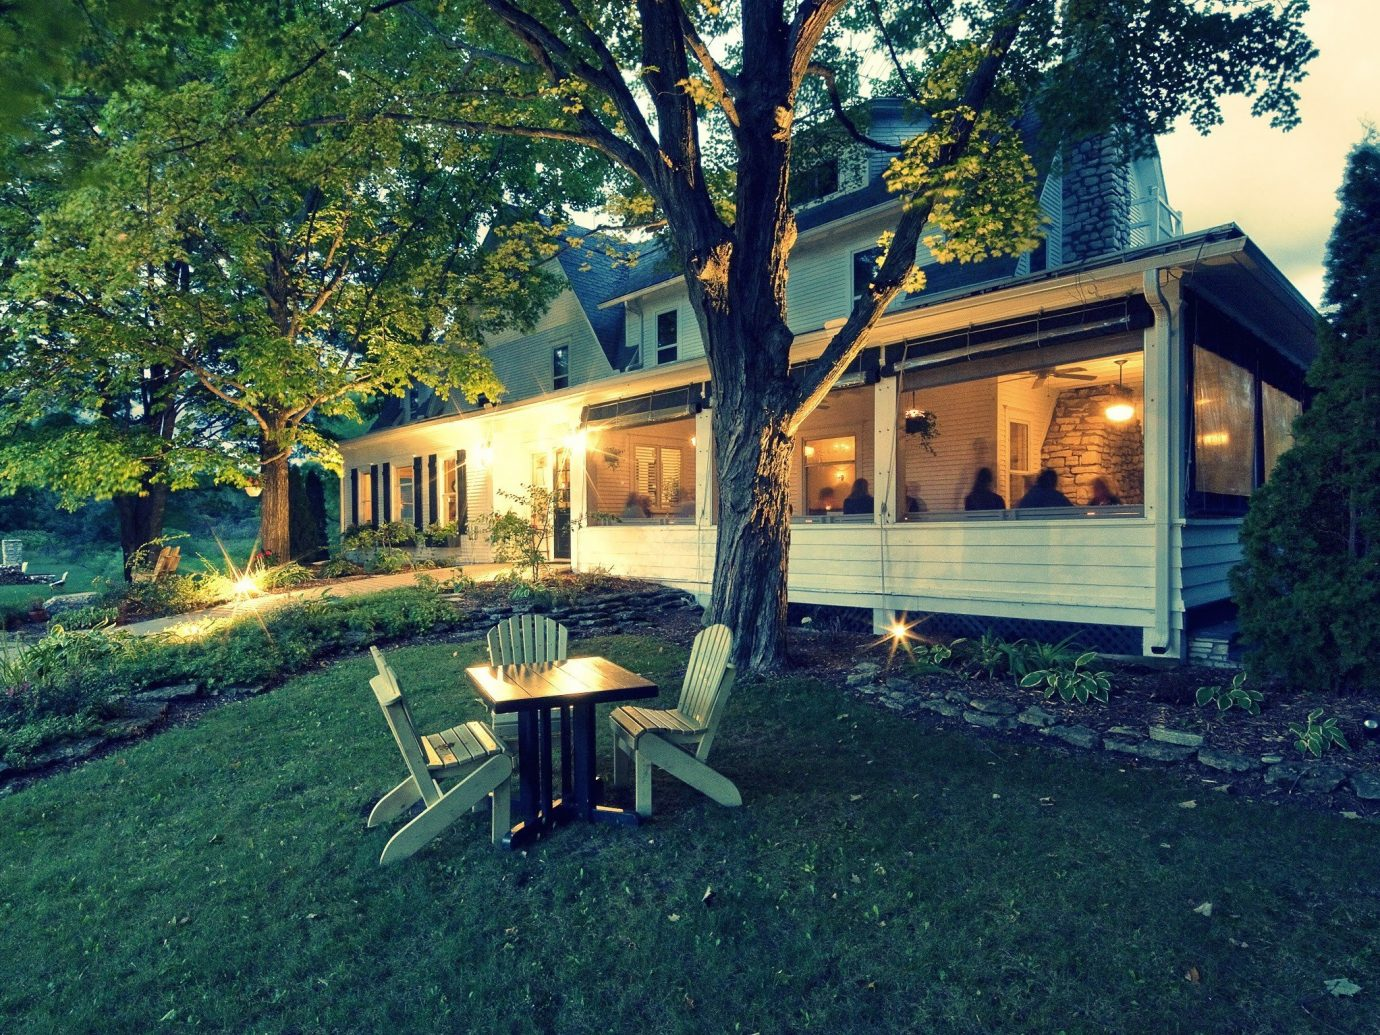 Trip Ideas Weekend Getaways tree outdoor grass home house property cottage real estate log cabin estate landscape lawn farmhouse backyard evening hut plant outdoor structure facade